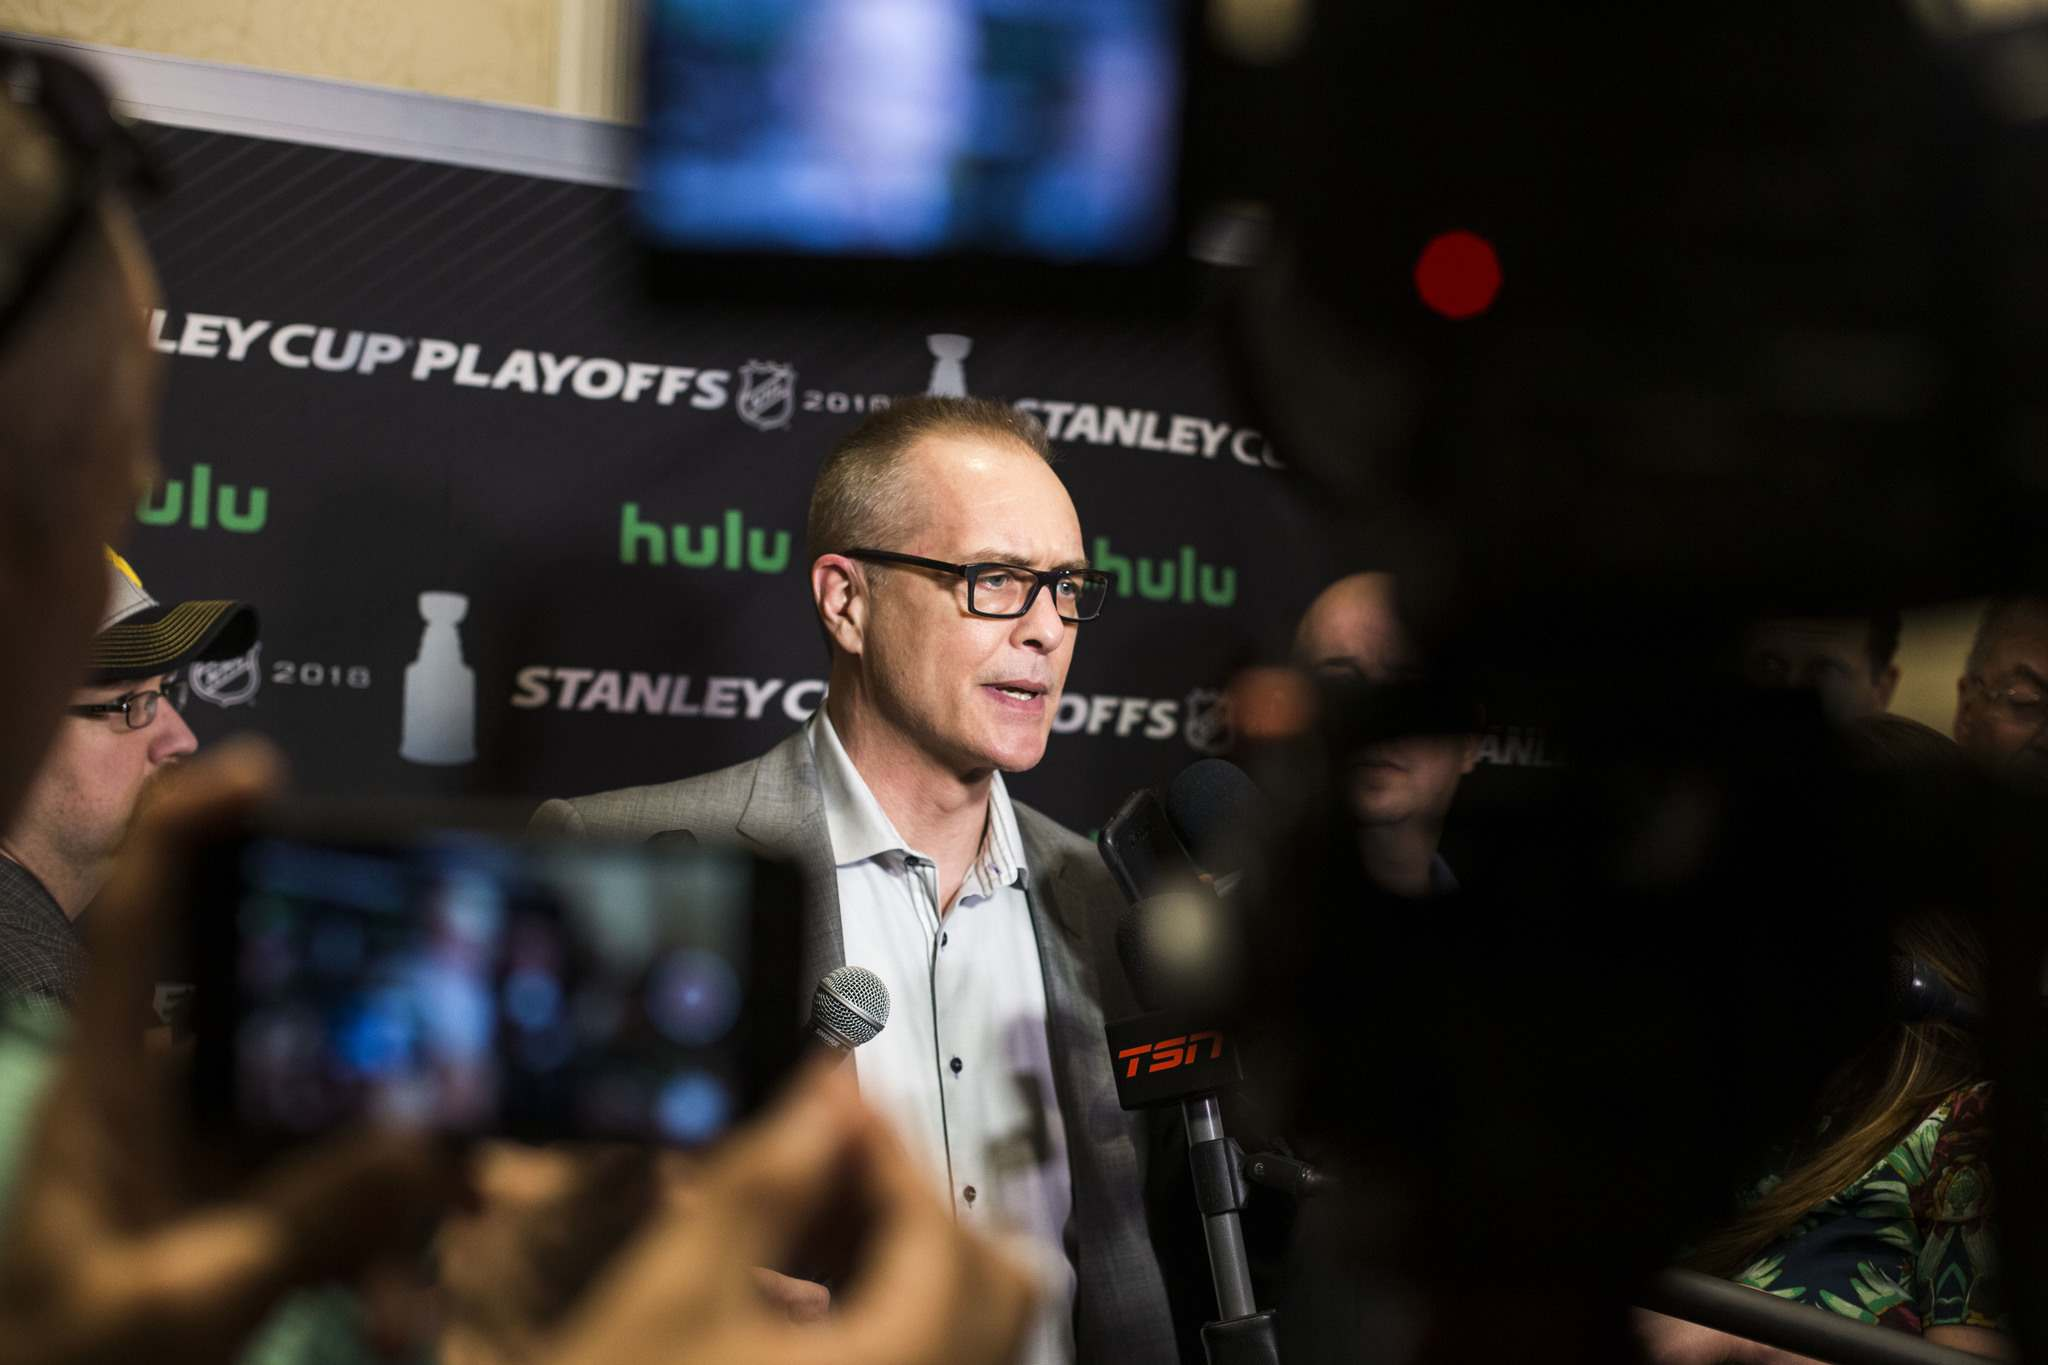 MIKAELA MACKENZIE / WINNIPEG FREE PRESS</p><p>Jets coach Paul Maurice talks to the media in Las Vegas Tuesday. The Jets and Golden Knights face off Wednesday evening in Game 3 of the Western Conference finals.</p>